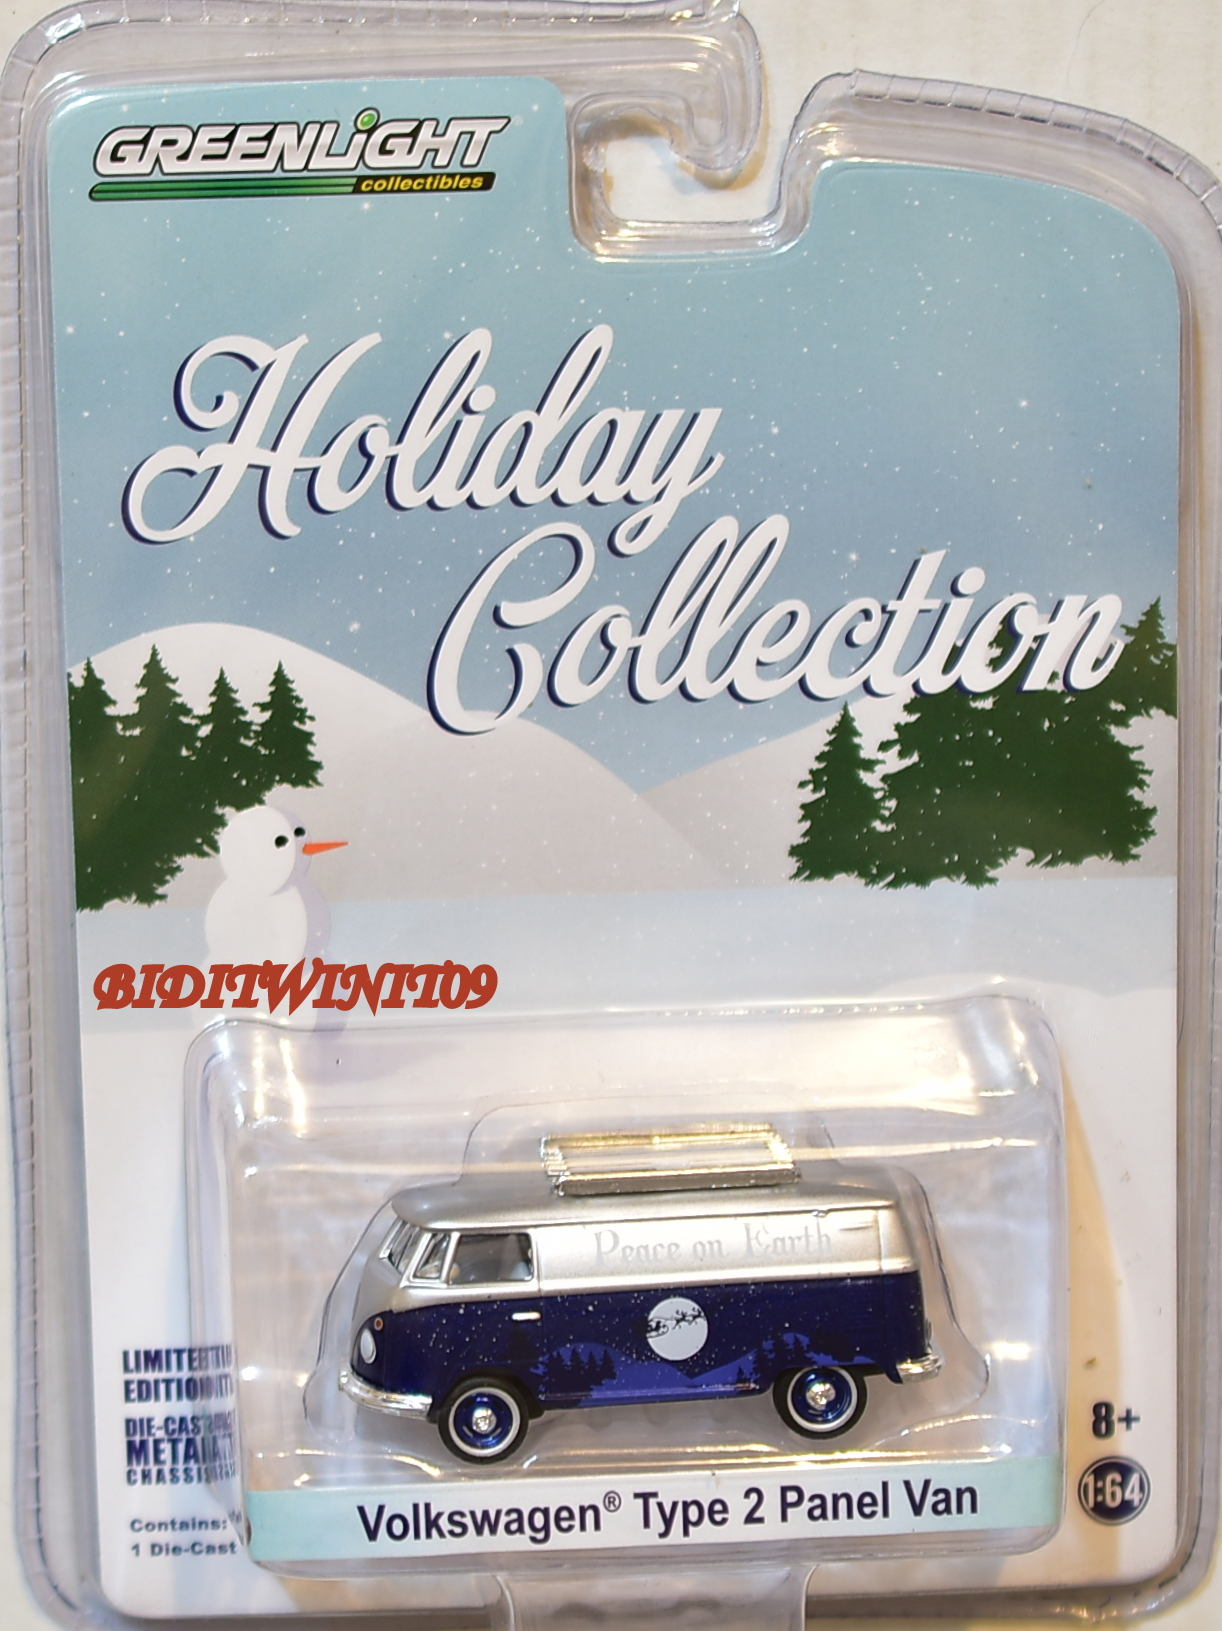 GREENLIGHT HOLIDAY COLLECTION VOLKSWAGEN TYPE 2 PANEL VAN